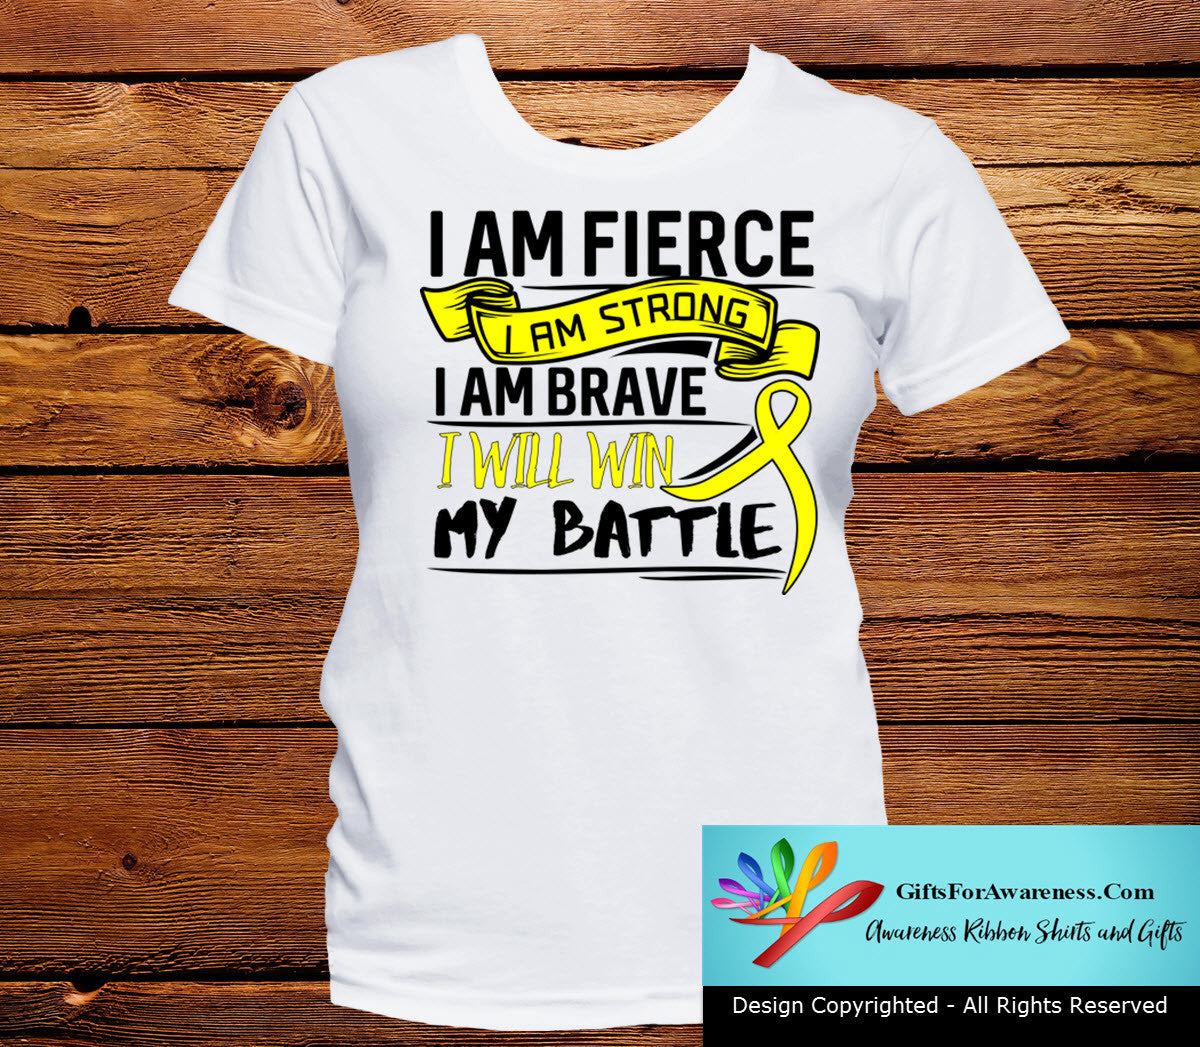 Endometriosis I Am Fierce Strong and Brave Shirts - GiftsForAwareness